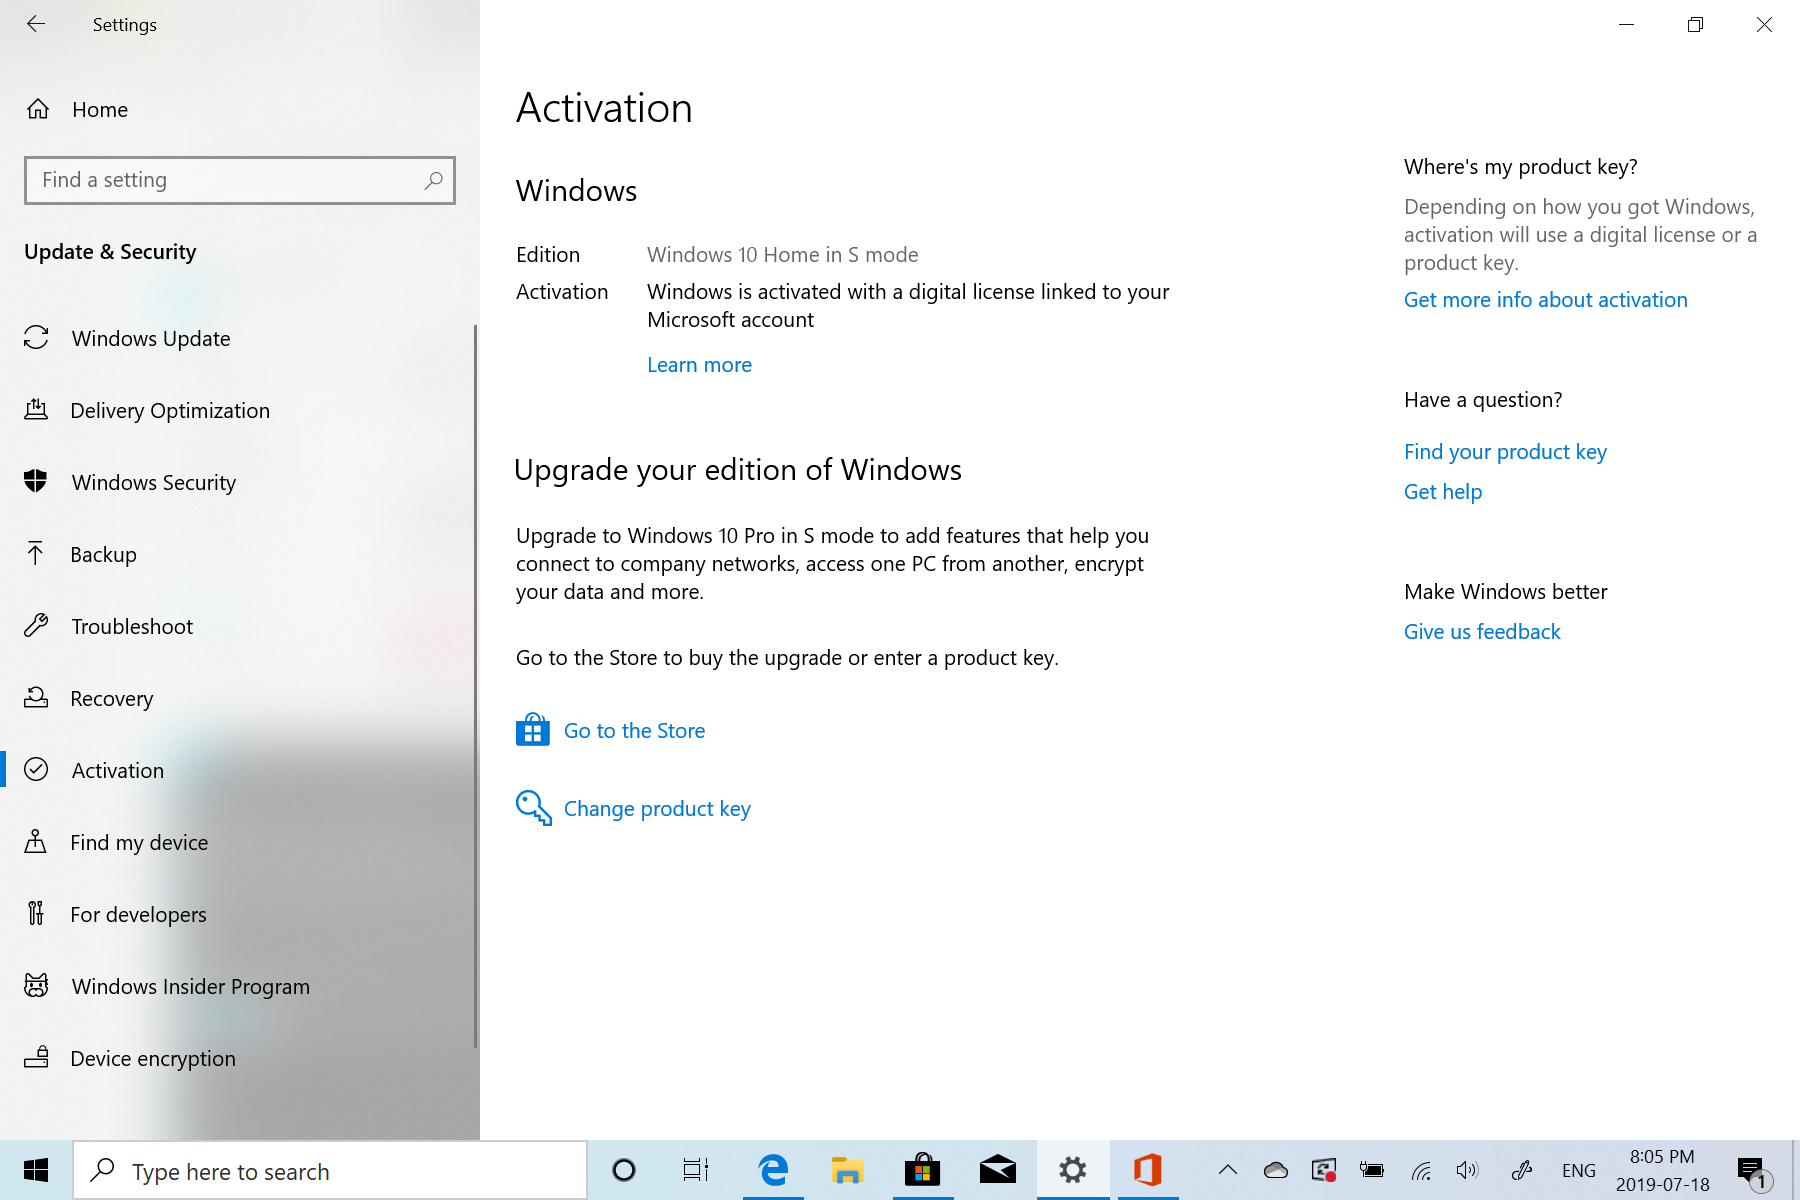 How to Install Office 365 in Windows 10 Home in S mode? 3c2eea26-ea2e-47f3-a745-33727b963619?upload=true.png